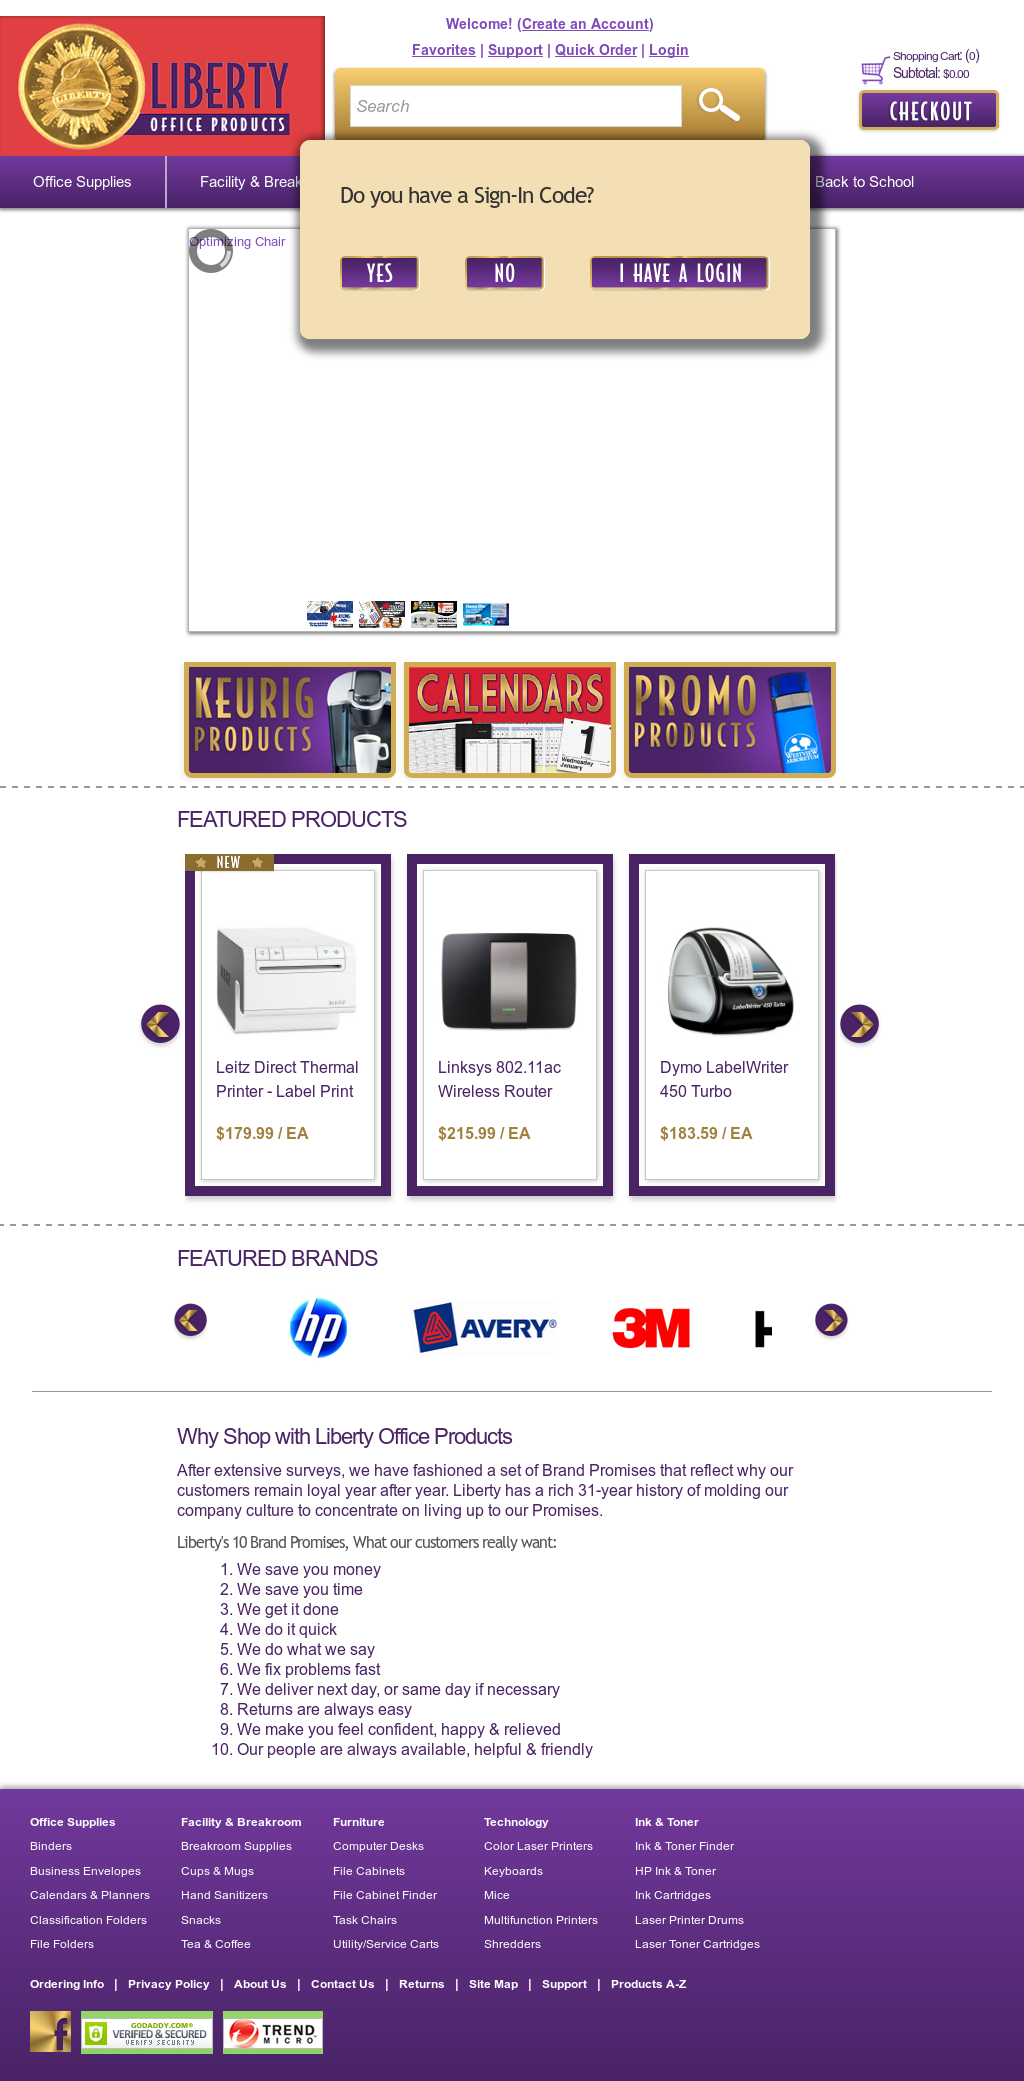 Liberty Office Products Website History